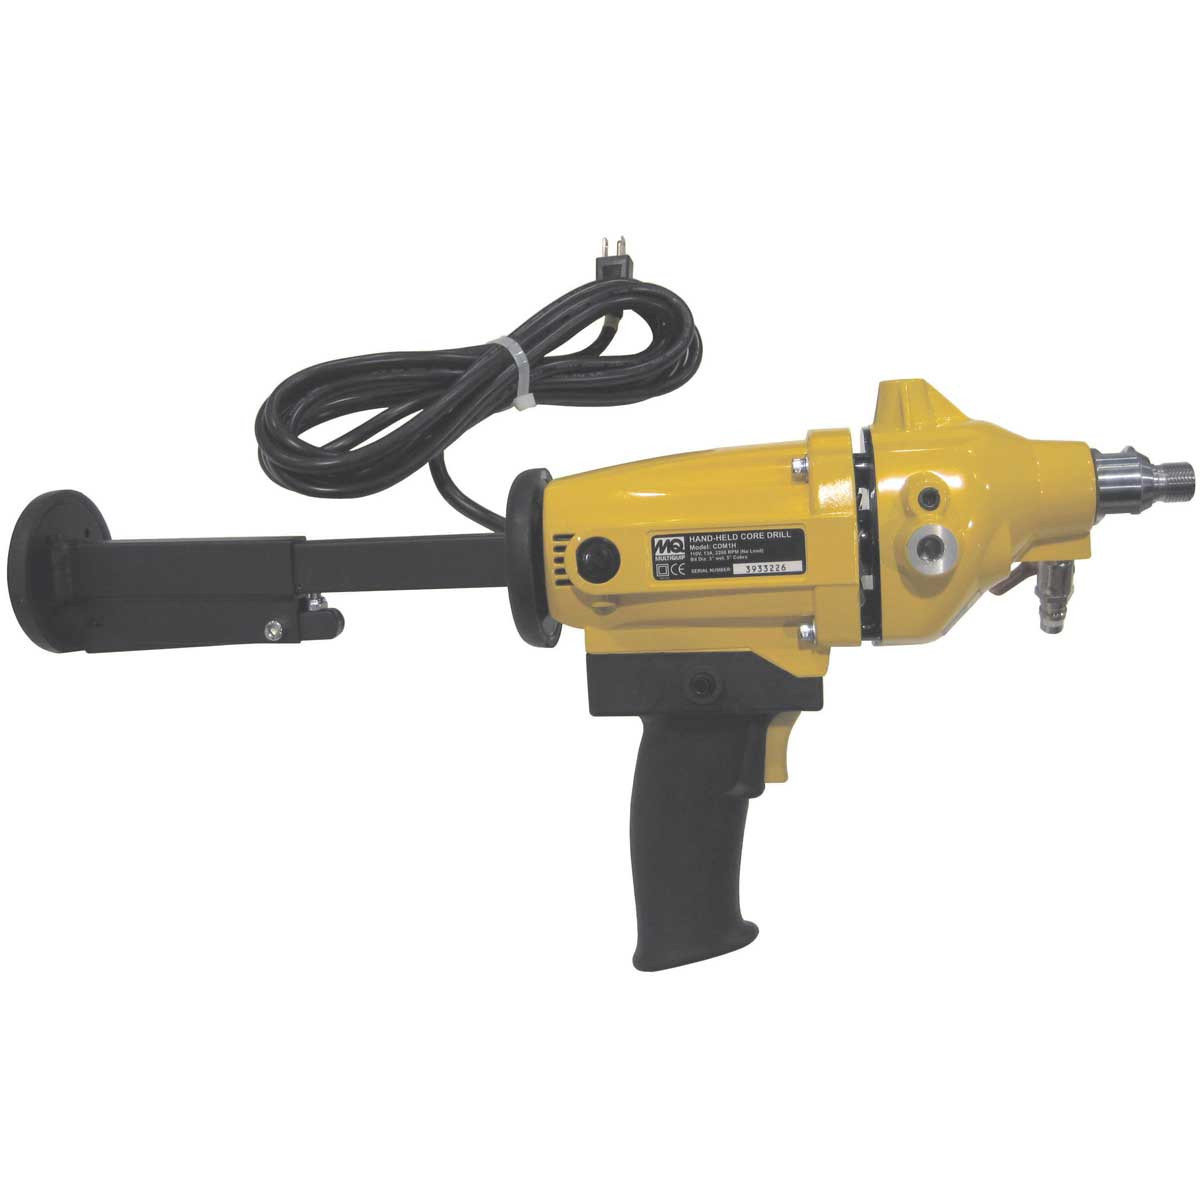 Multiquip CDM1H Wet Core Drill